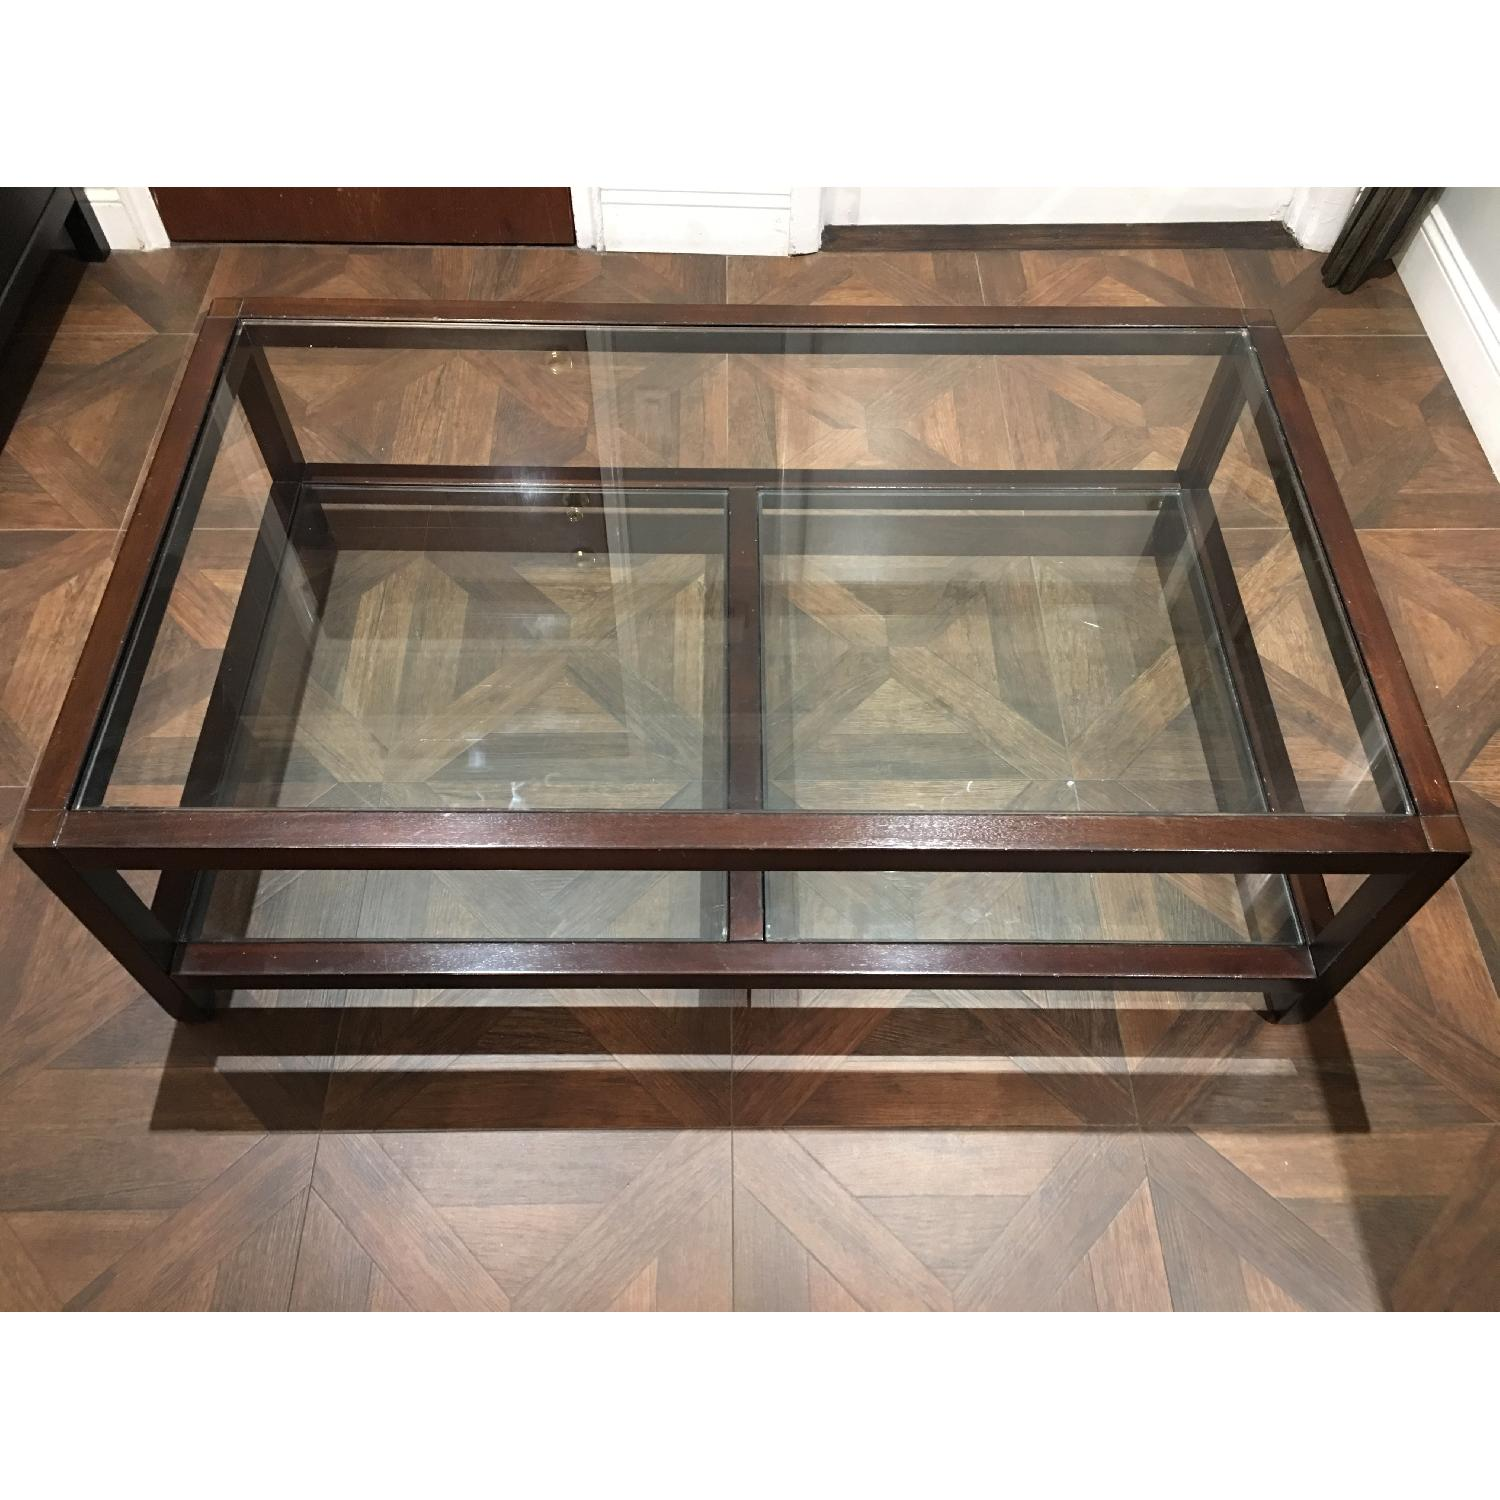 Pottery Barn Glass & Wood Coffee Table - image-6